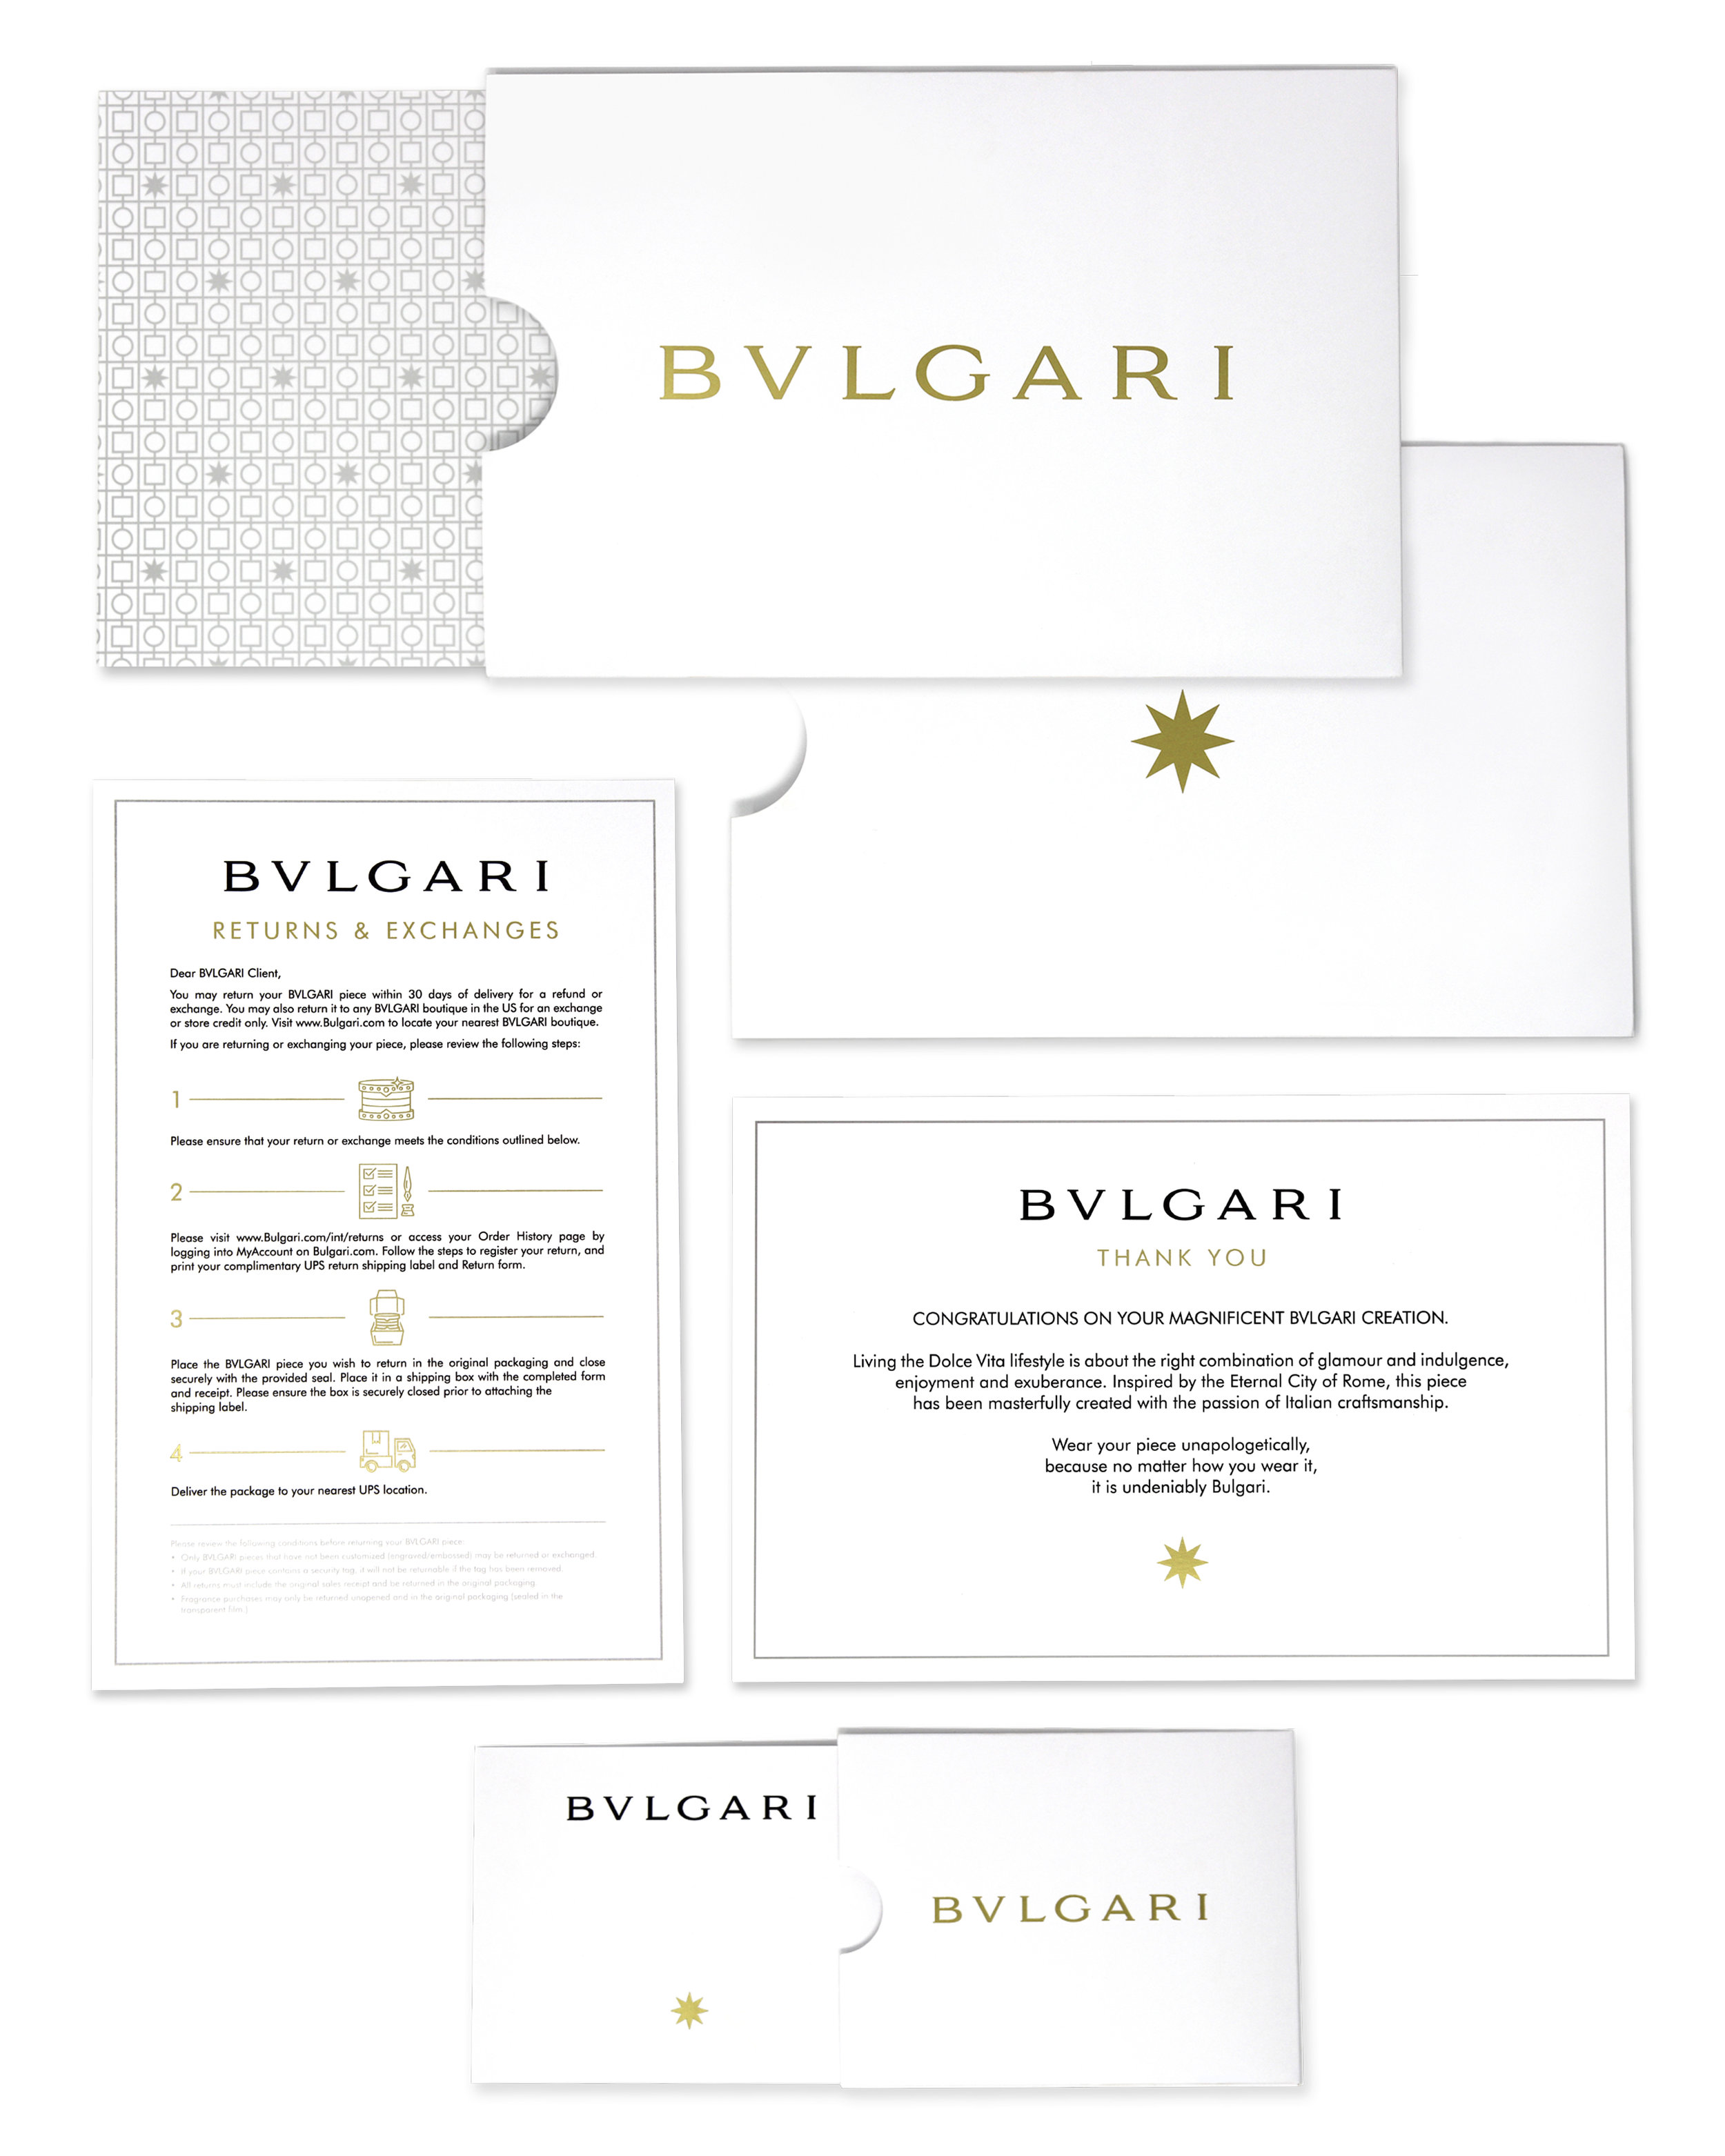 BVLGARI - Bvlgari wanted a specific packaging collateral redesign including assets such as: return instructions, thank you cards, gift note, etc.